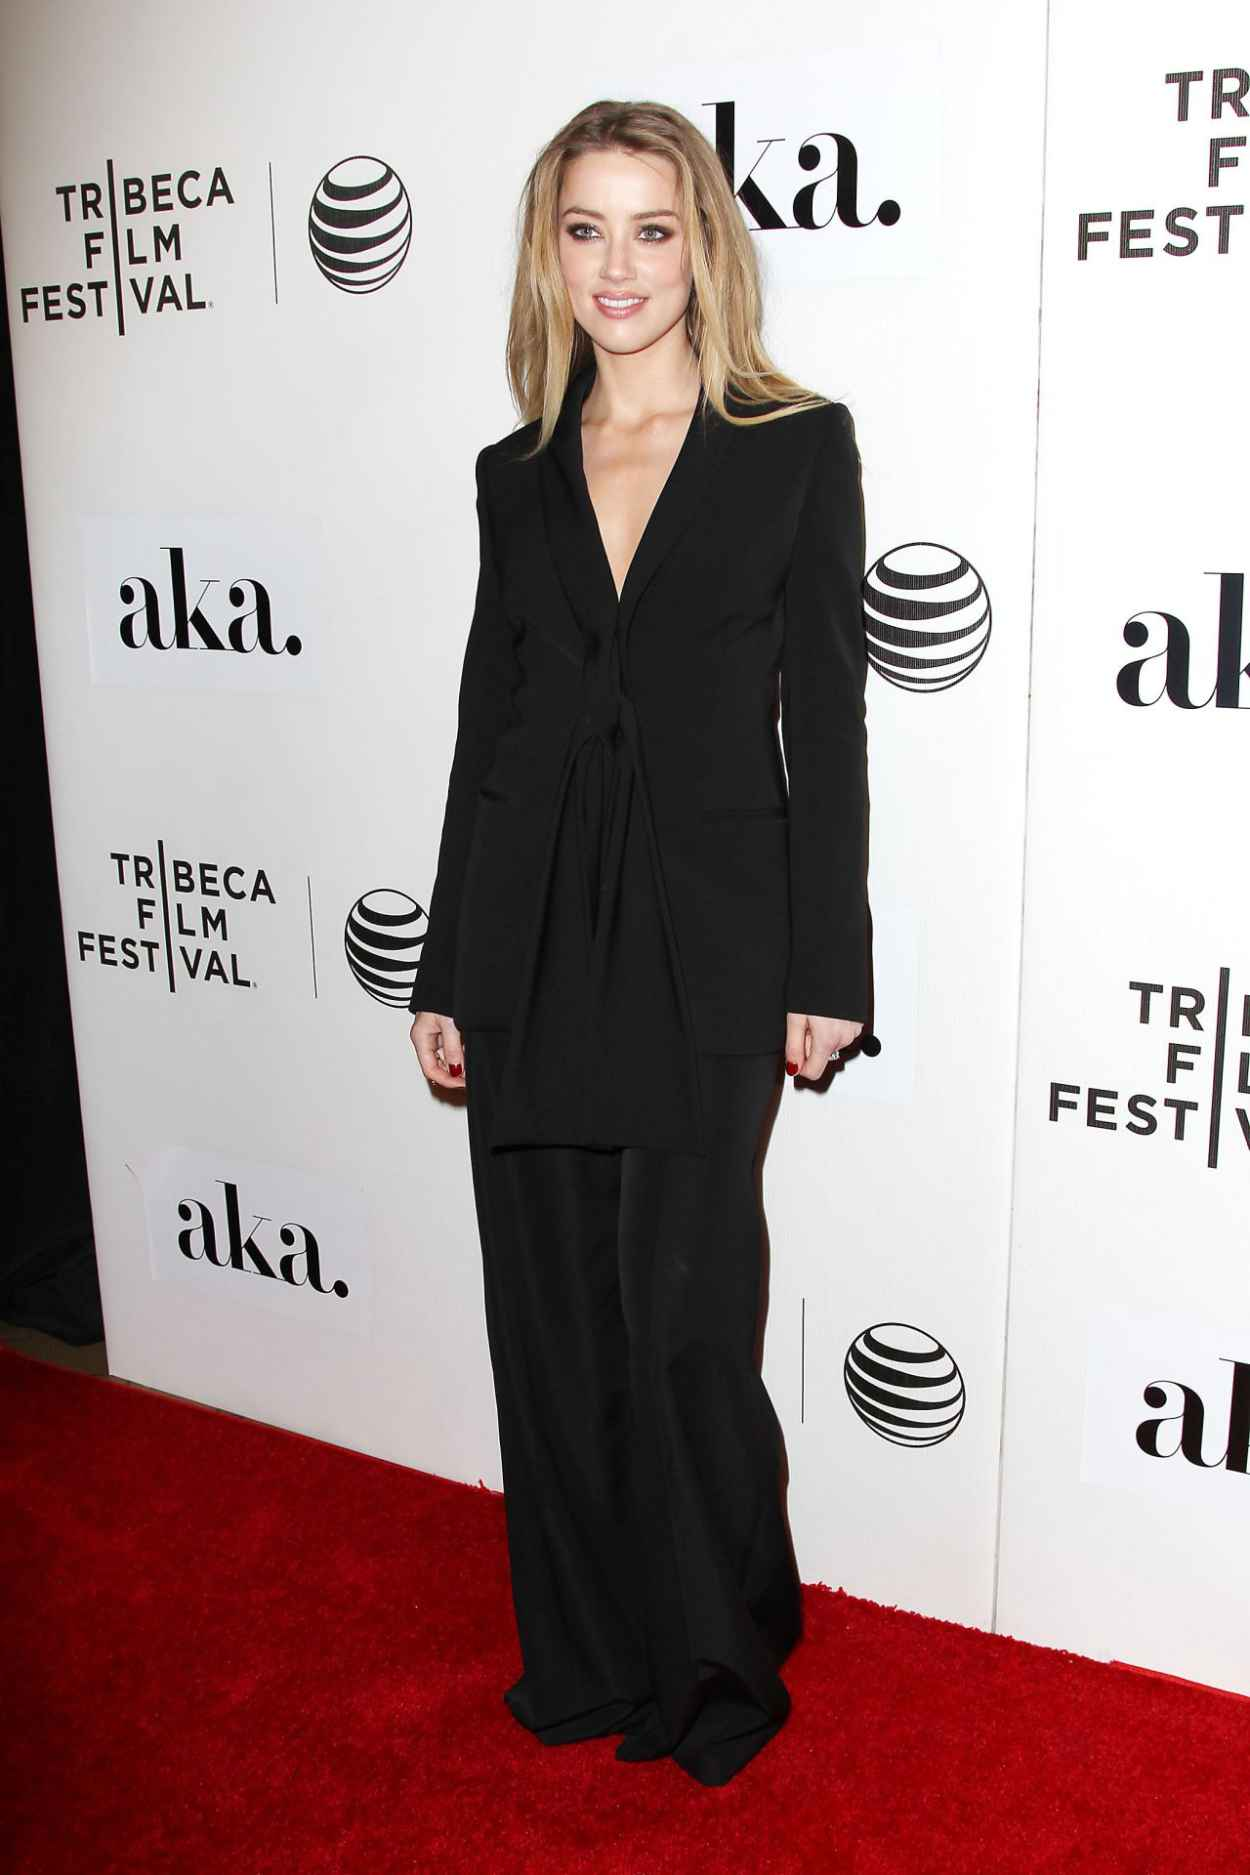 Amber Heard - The Adderall Diaries Premiere in New York City-2